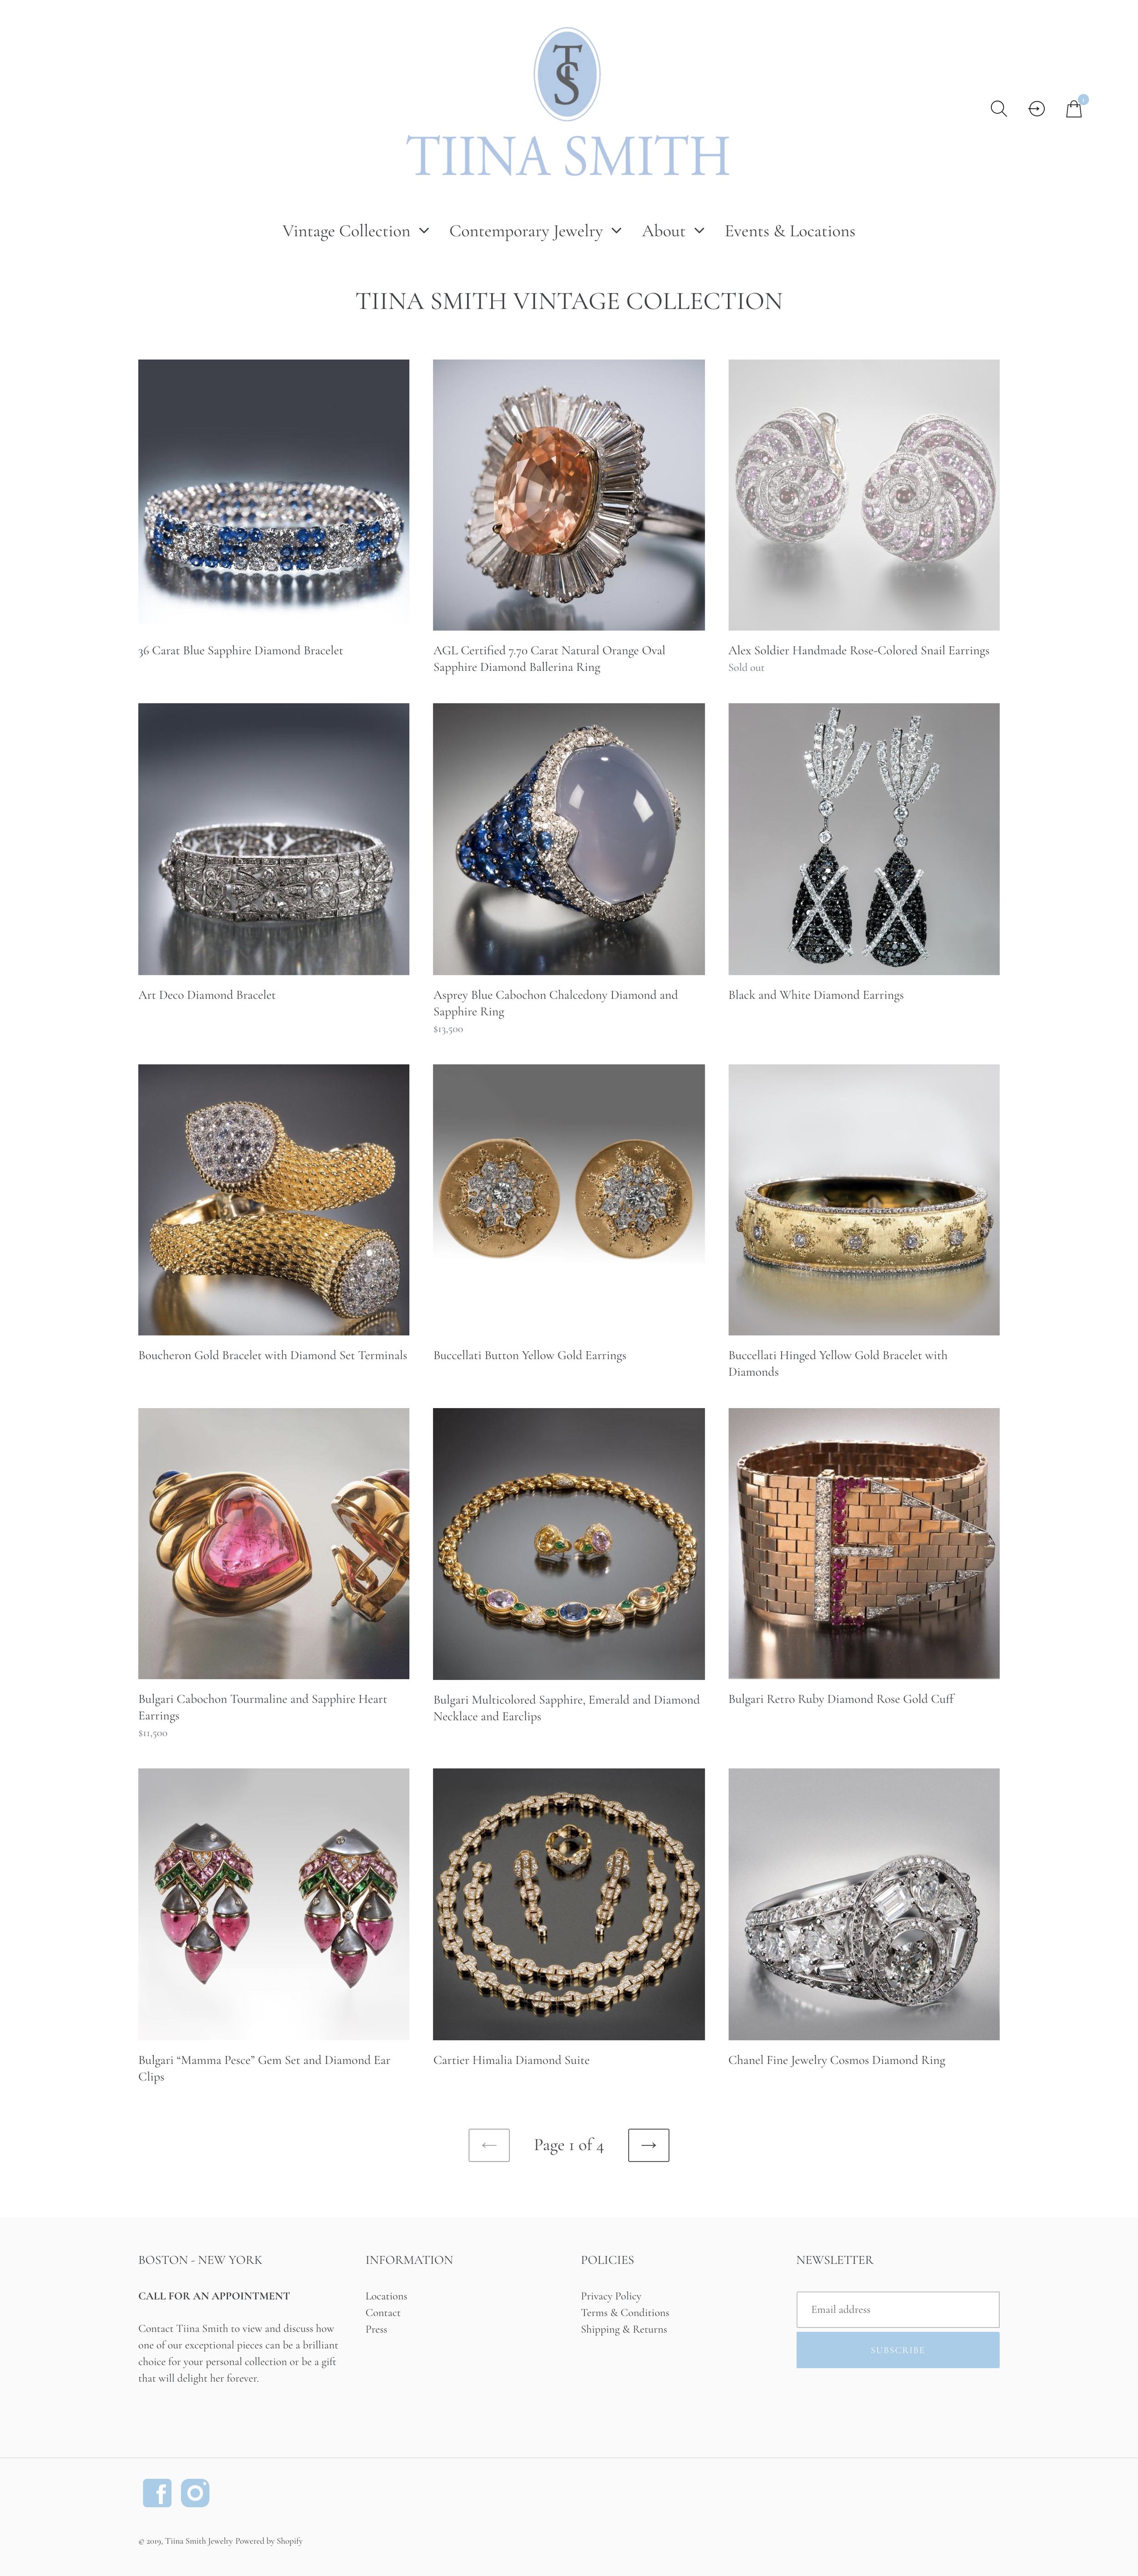 screencapture-tiinasmithjewelry-collections-tiina-smith-vintage-collection-2019-03-06-17_34_06.png